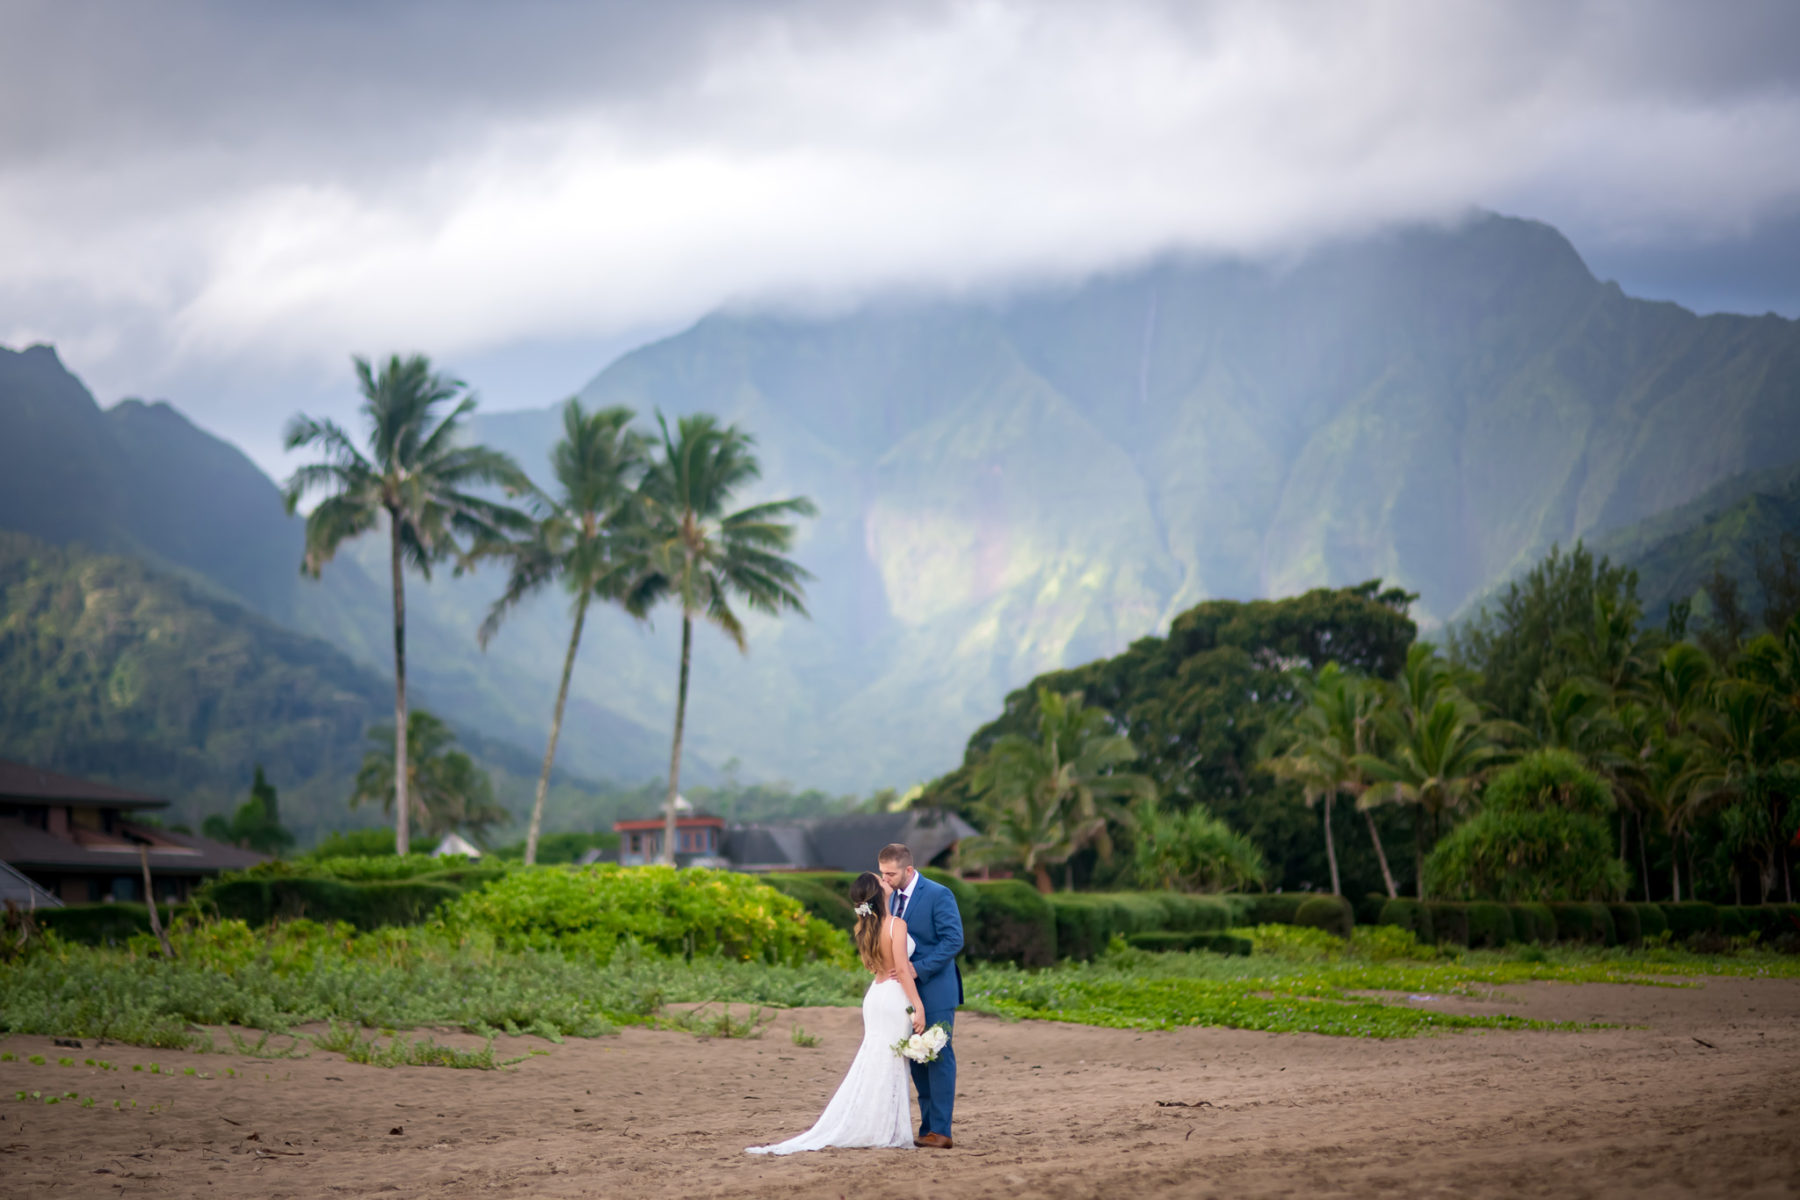 Kauai wedding couple with Hanalei mountain views